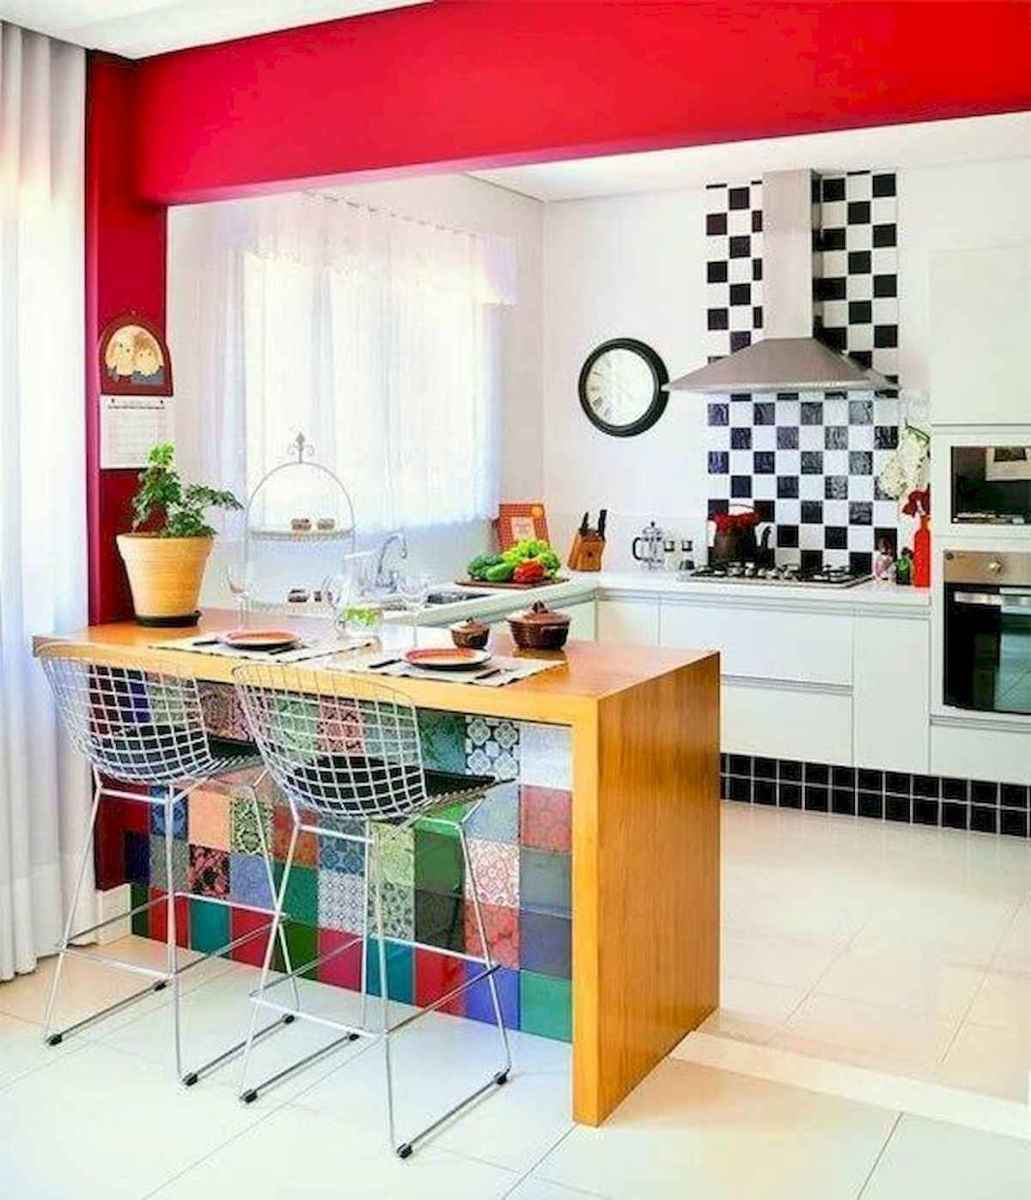 80+ Favorite Colorful Kitchen Decor Ideas And Remodel for Summer Project (30)